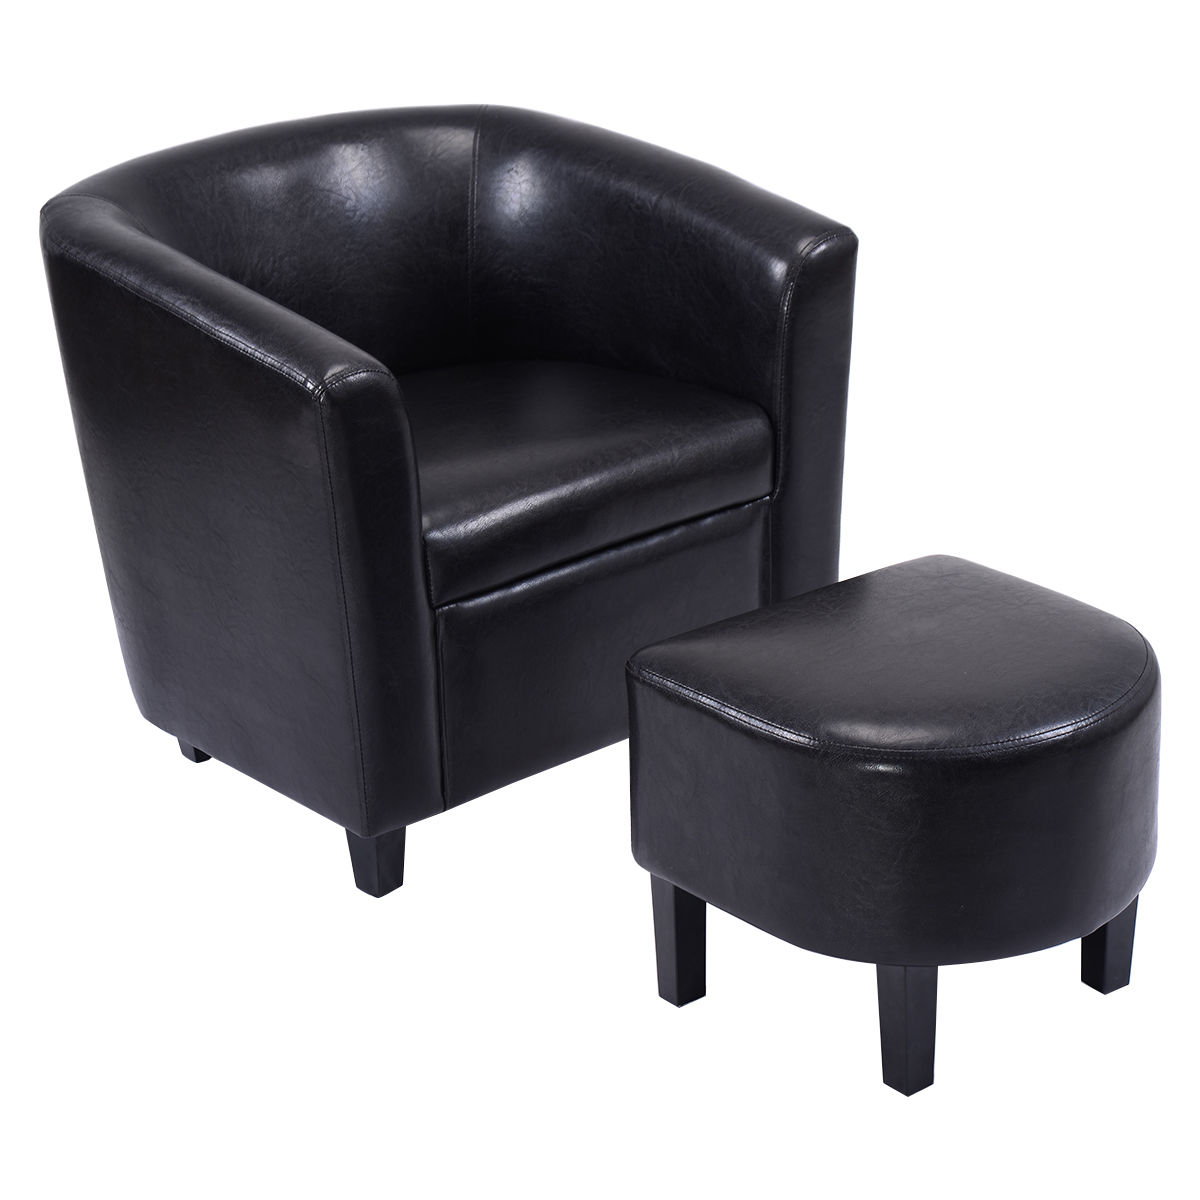 Costway Modern Leisure Chair PU Leather Wooden Arm Chair wOttoman